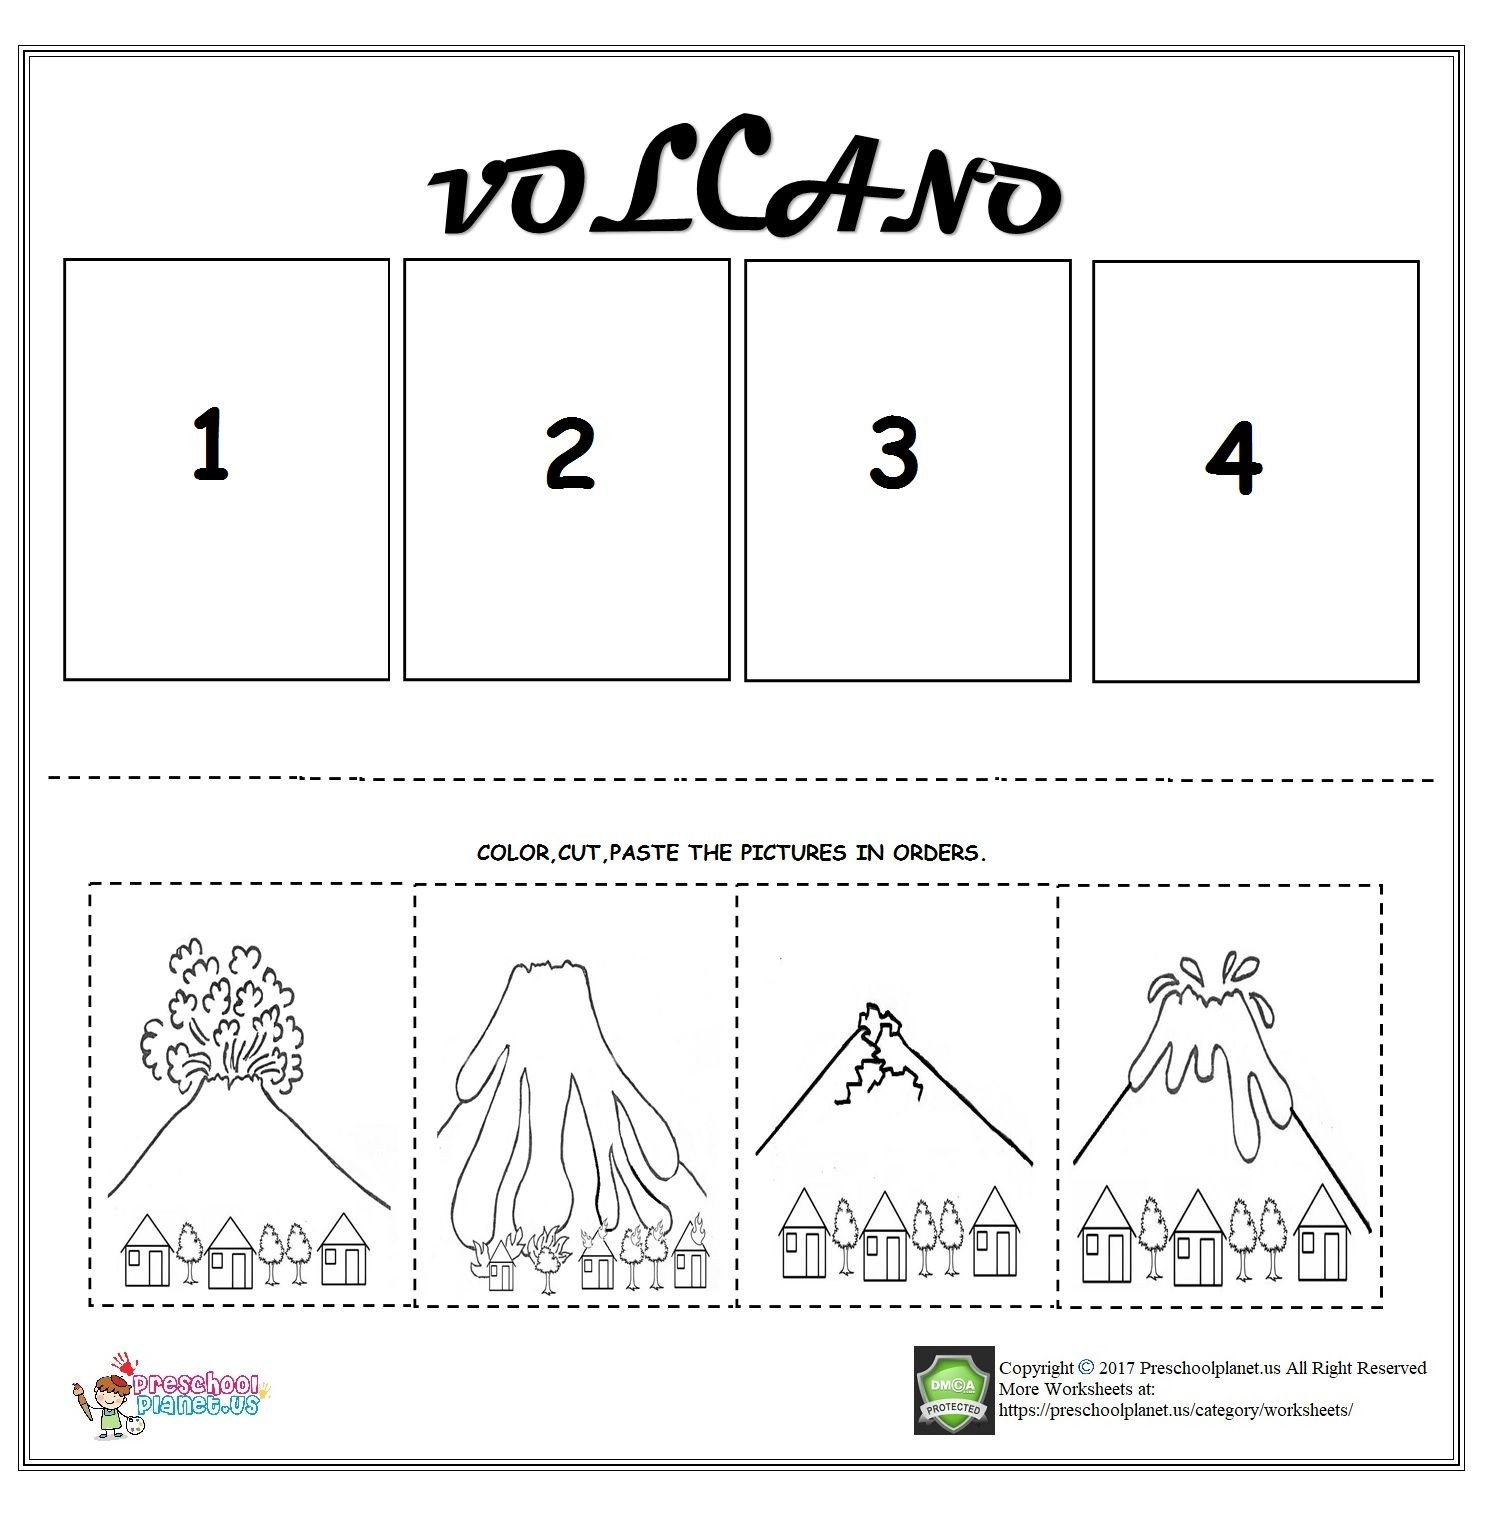 Sequencing Worksheets 5th Grade Volcano Sequencing Worksheet for Kids